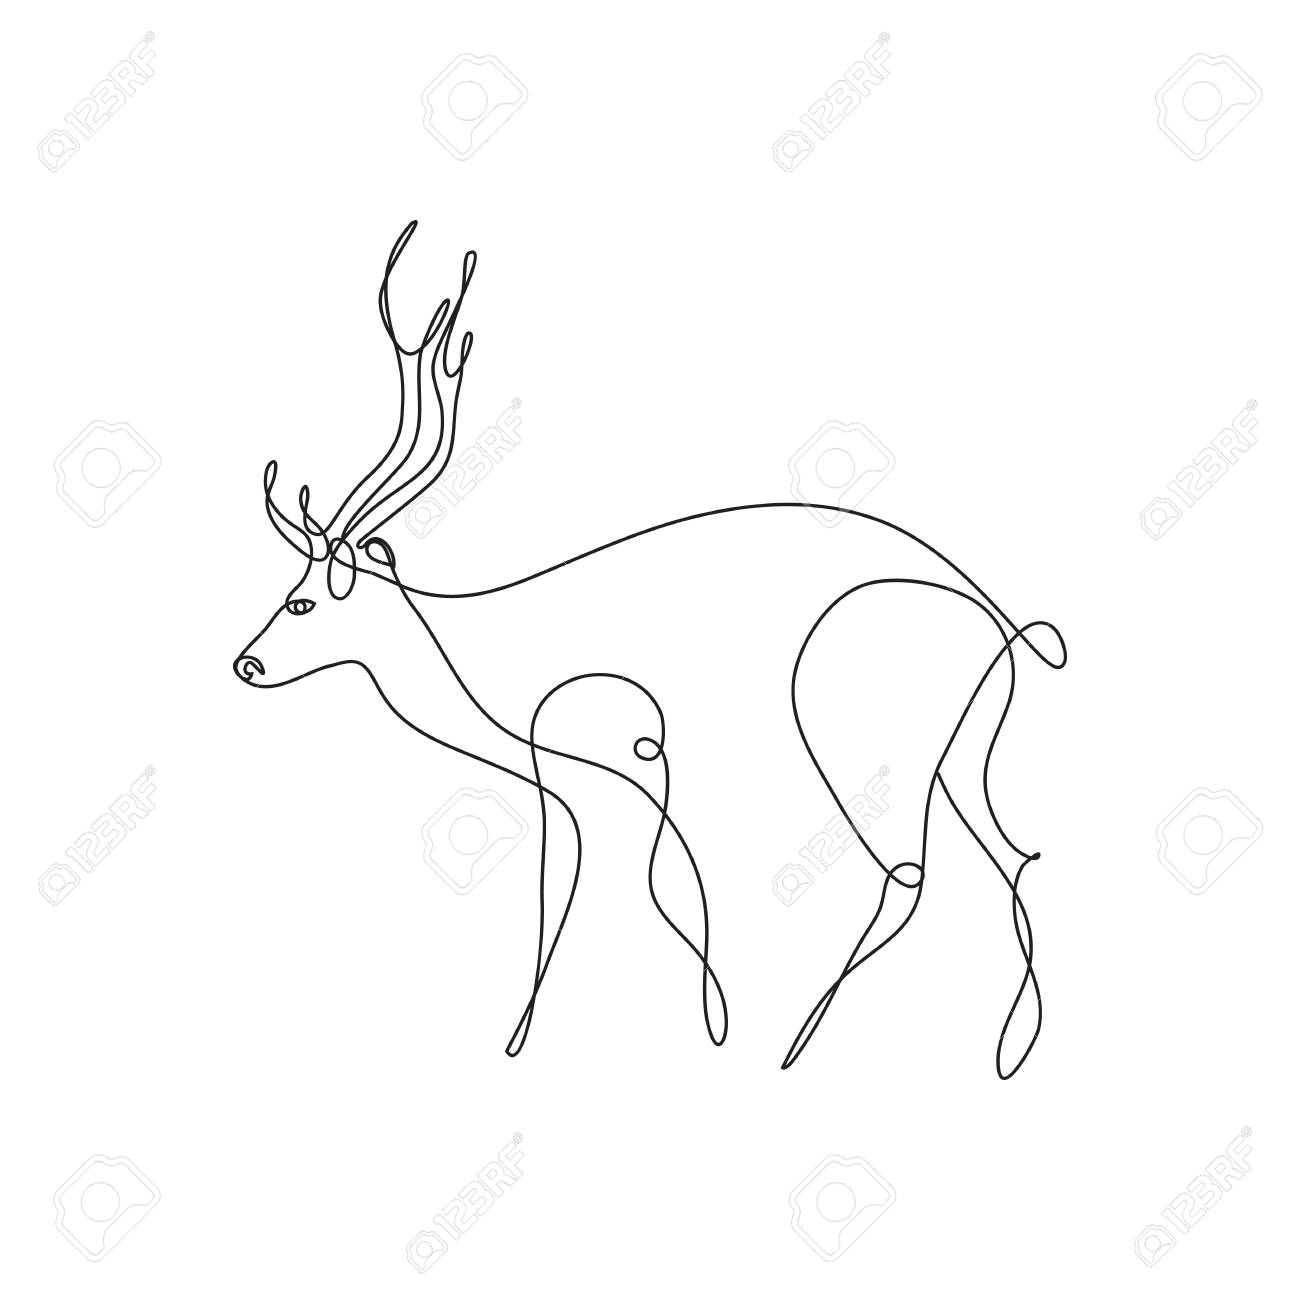 Line Art Deer Abstract Modern Decoration Vector Illustration Royalty Free Cliparts Vectors And Stock Illustration Image 88356206